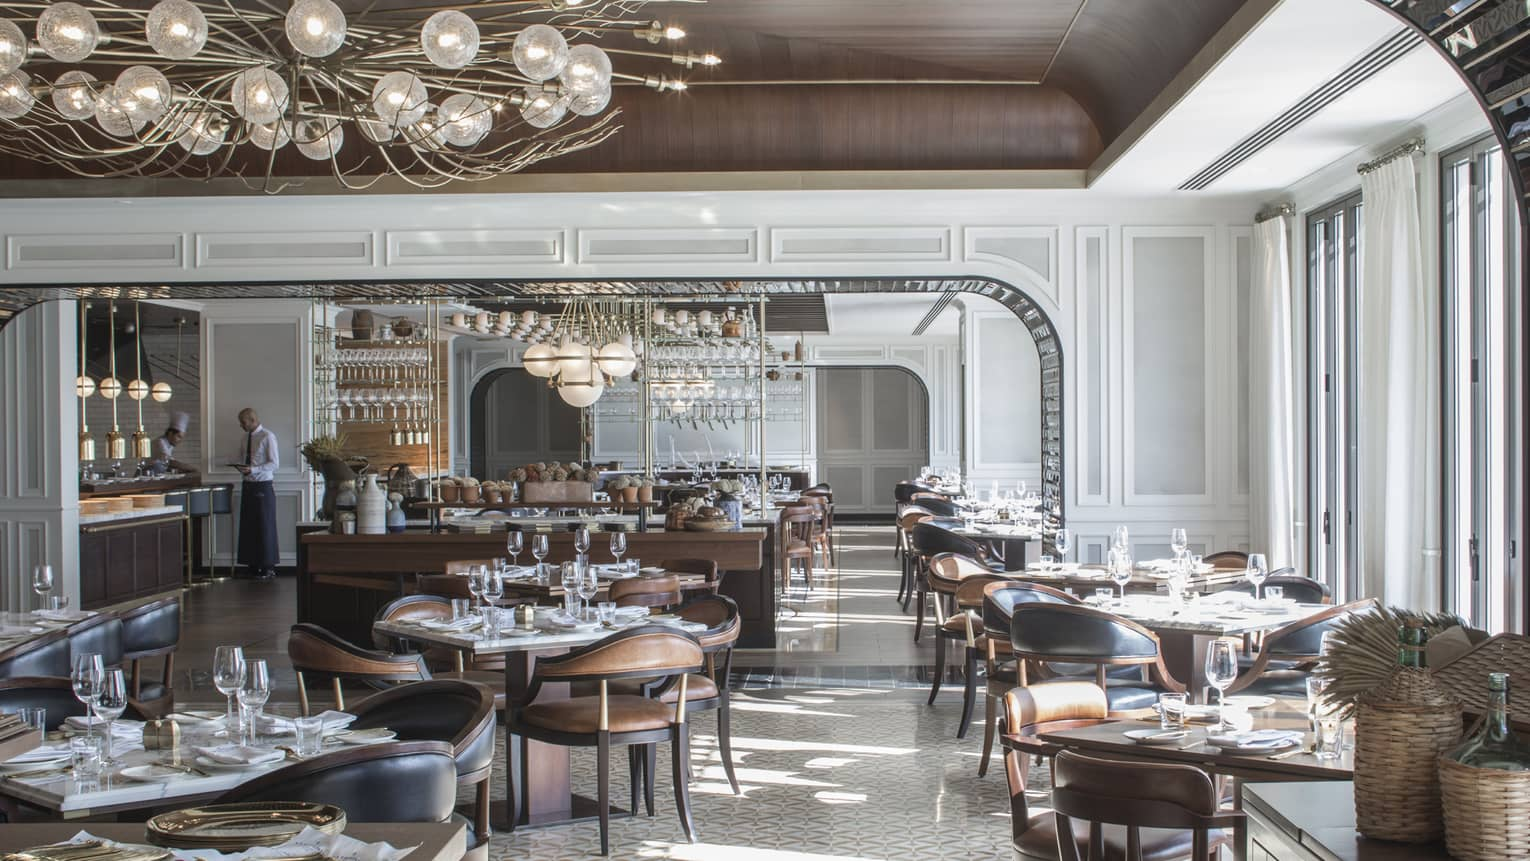 Large, sunny La Capitale dining room with elegant brown leather chairs, tables, white tile, modern chandeliers, server at counter